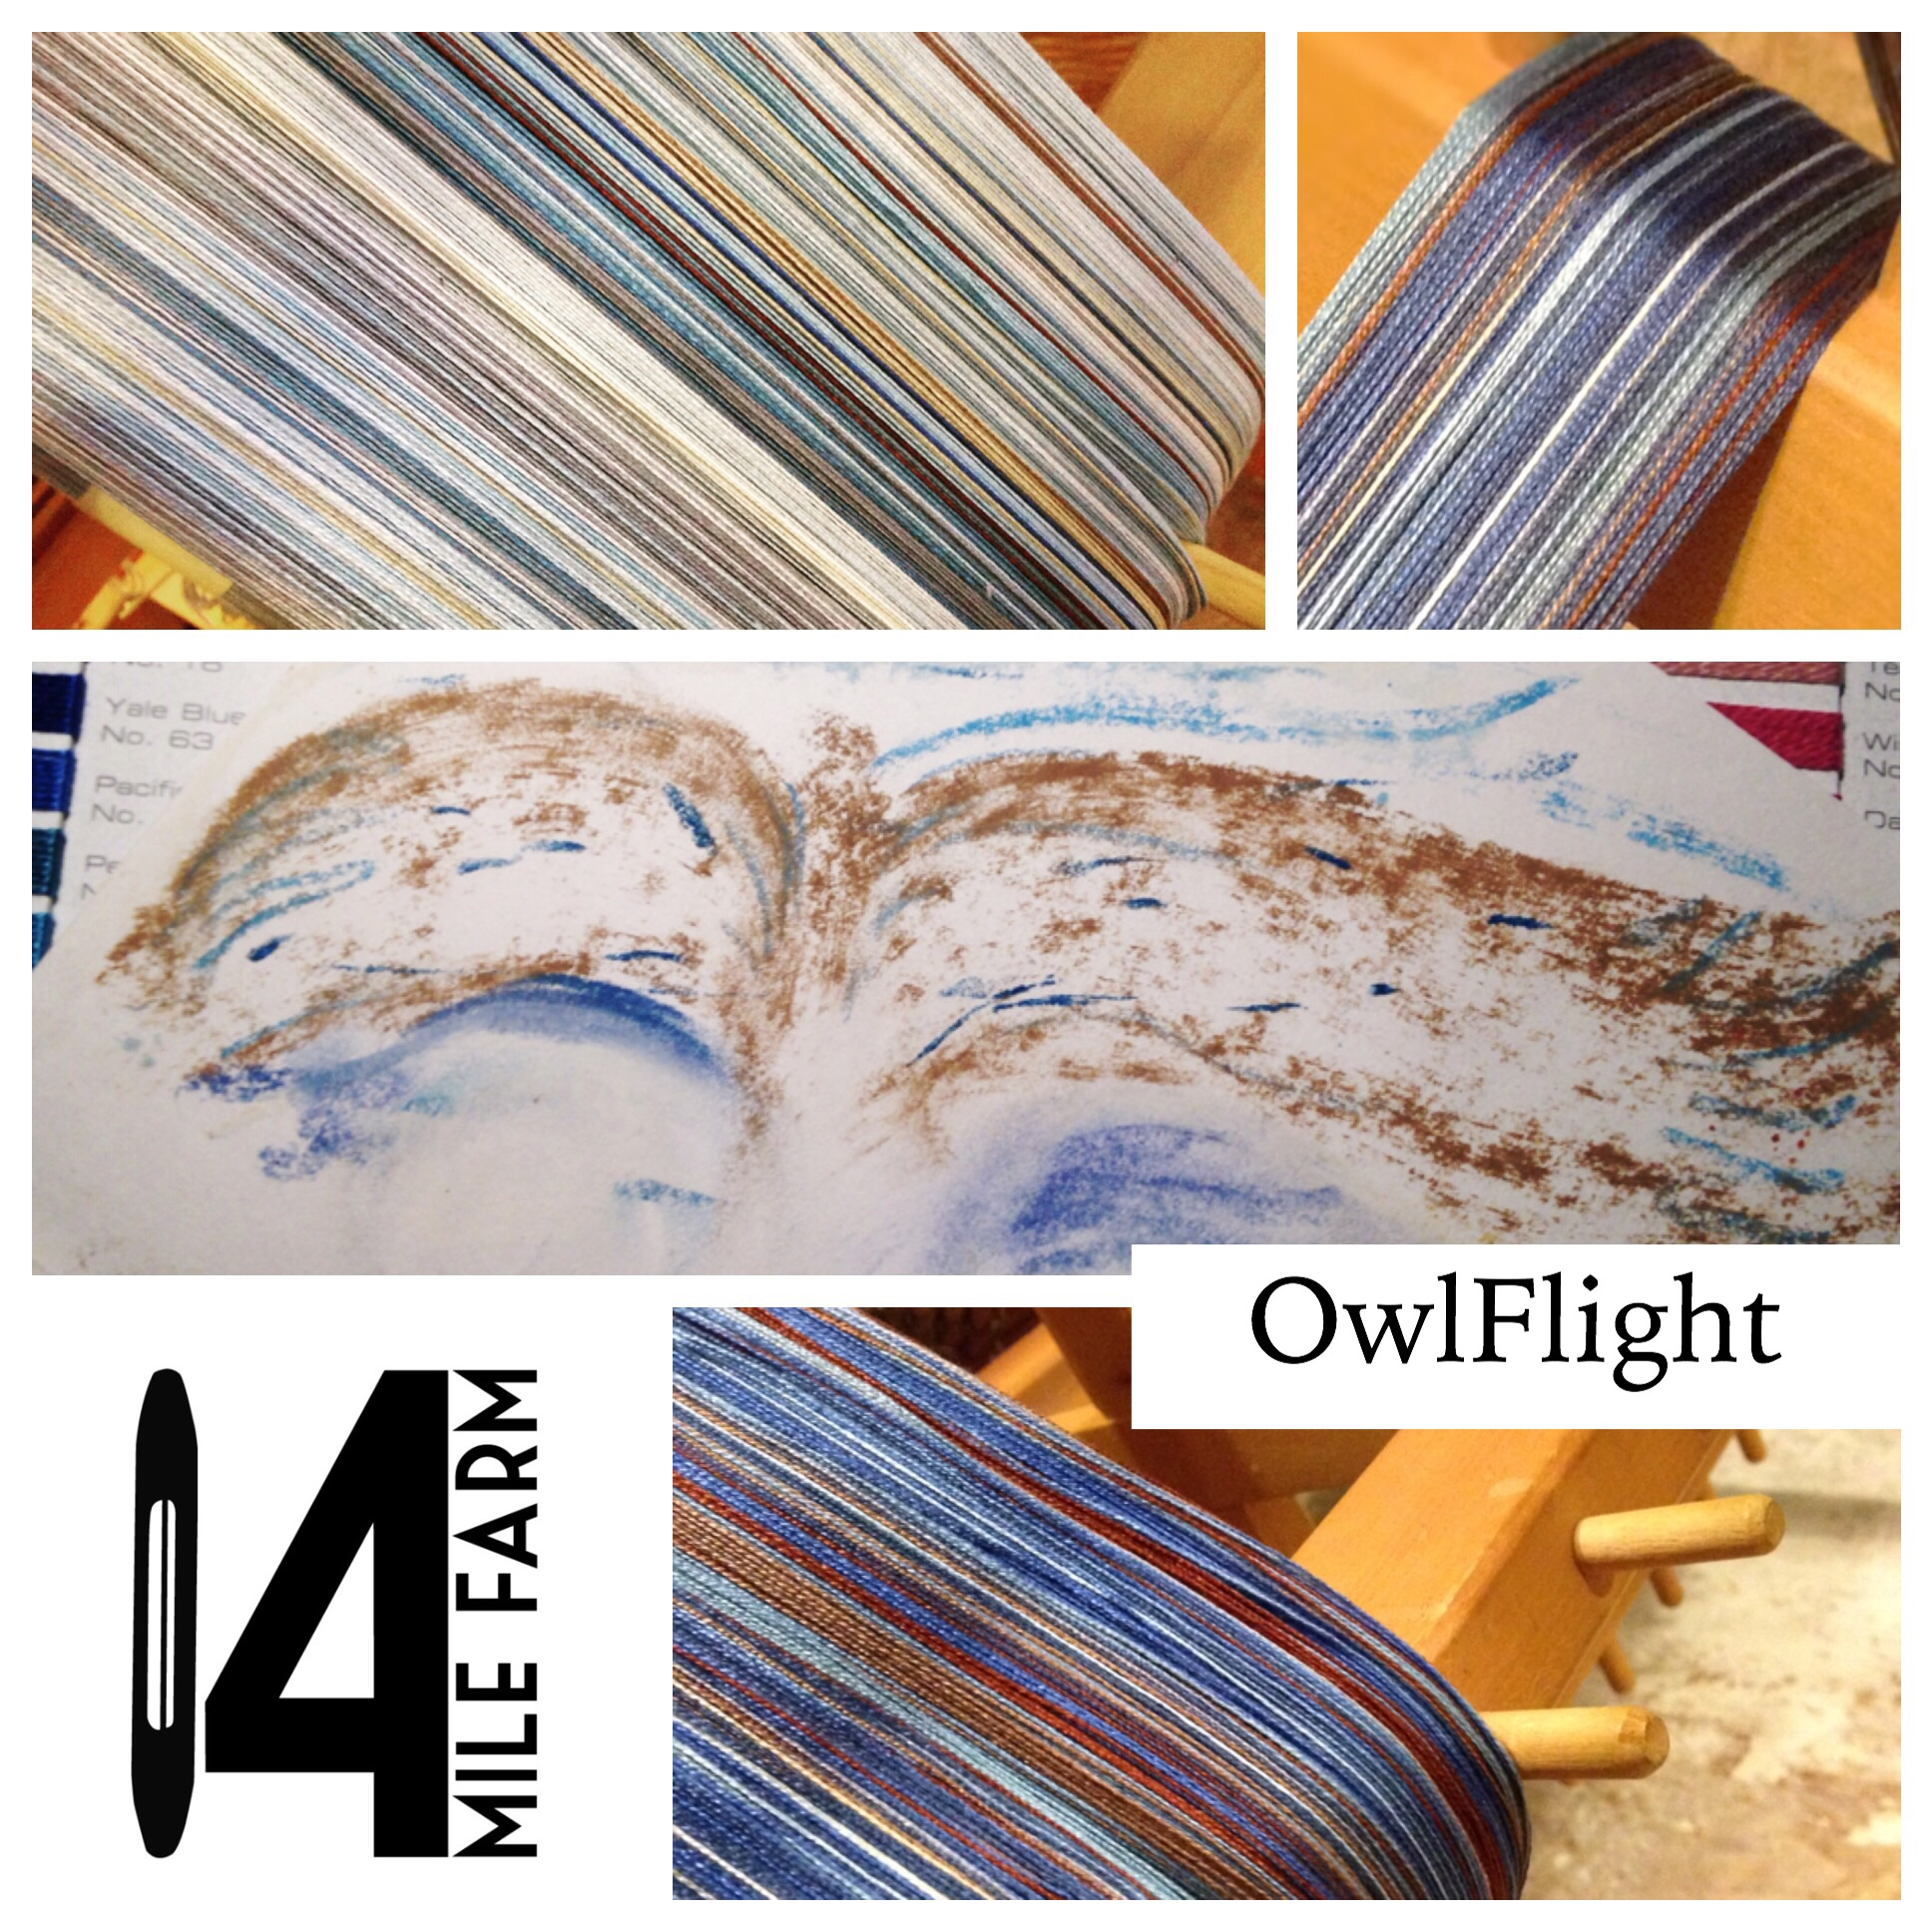 OwlFlight Babywearing Wrap | 14 Mile Farm Baby Wraps and Heirloom Textiles